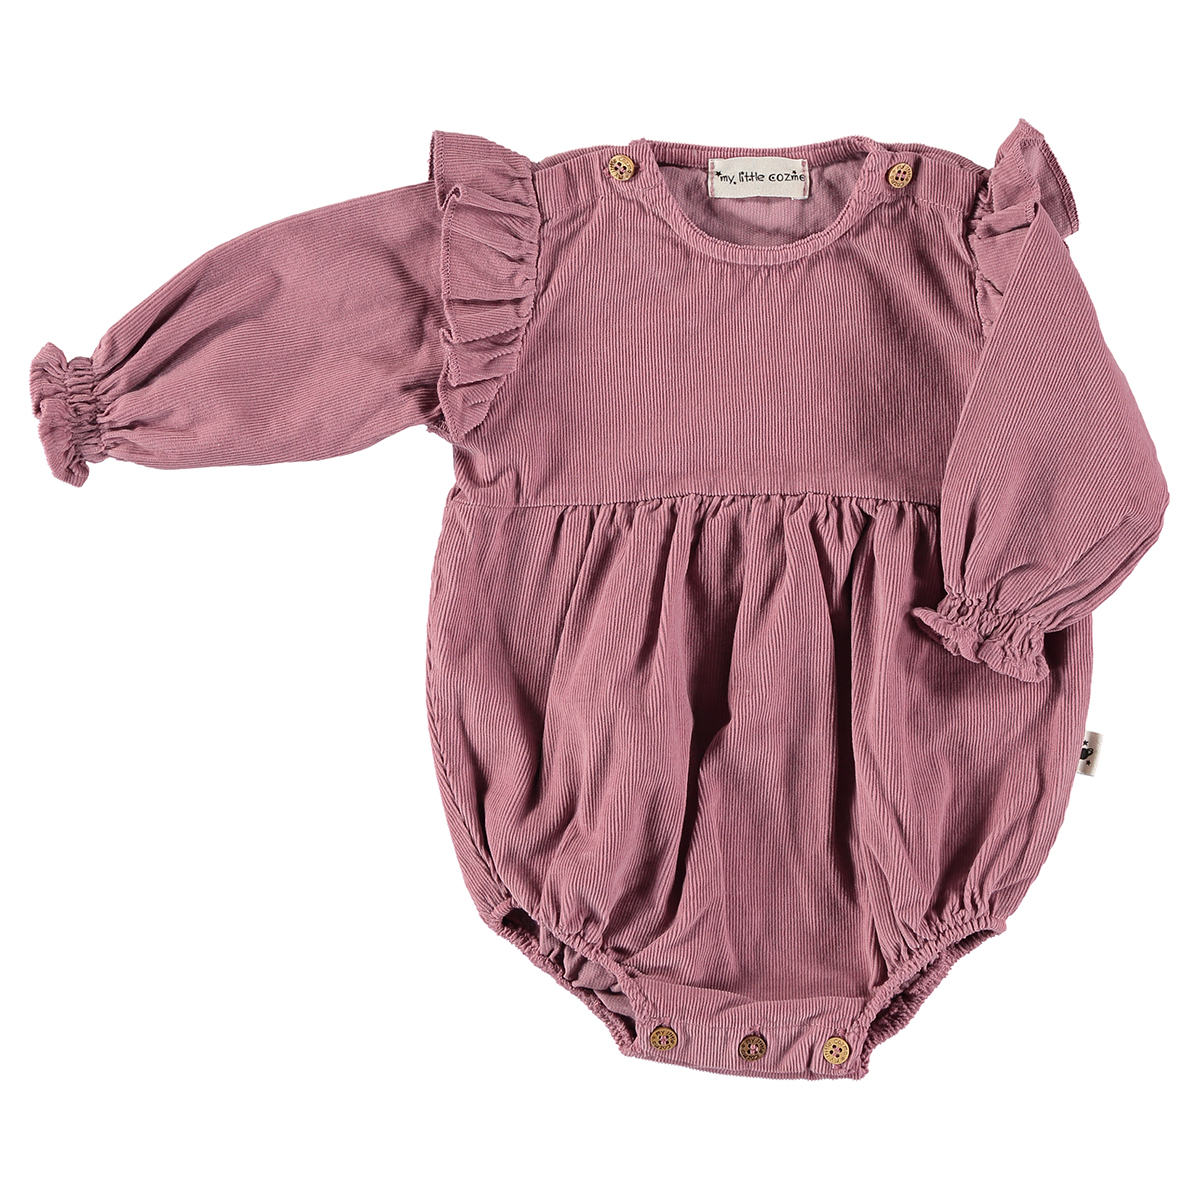 My Little Cozmo Micropana Romper in Vintage Pink